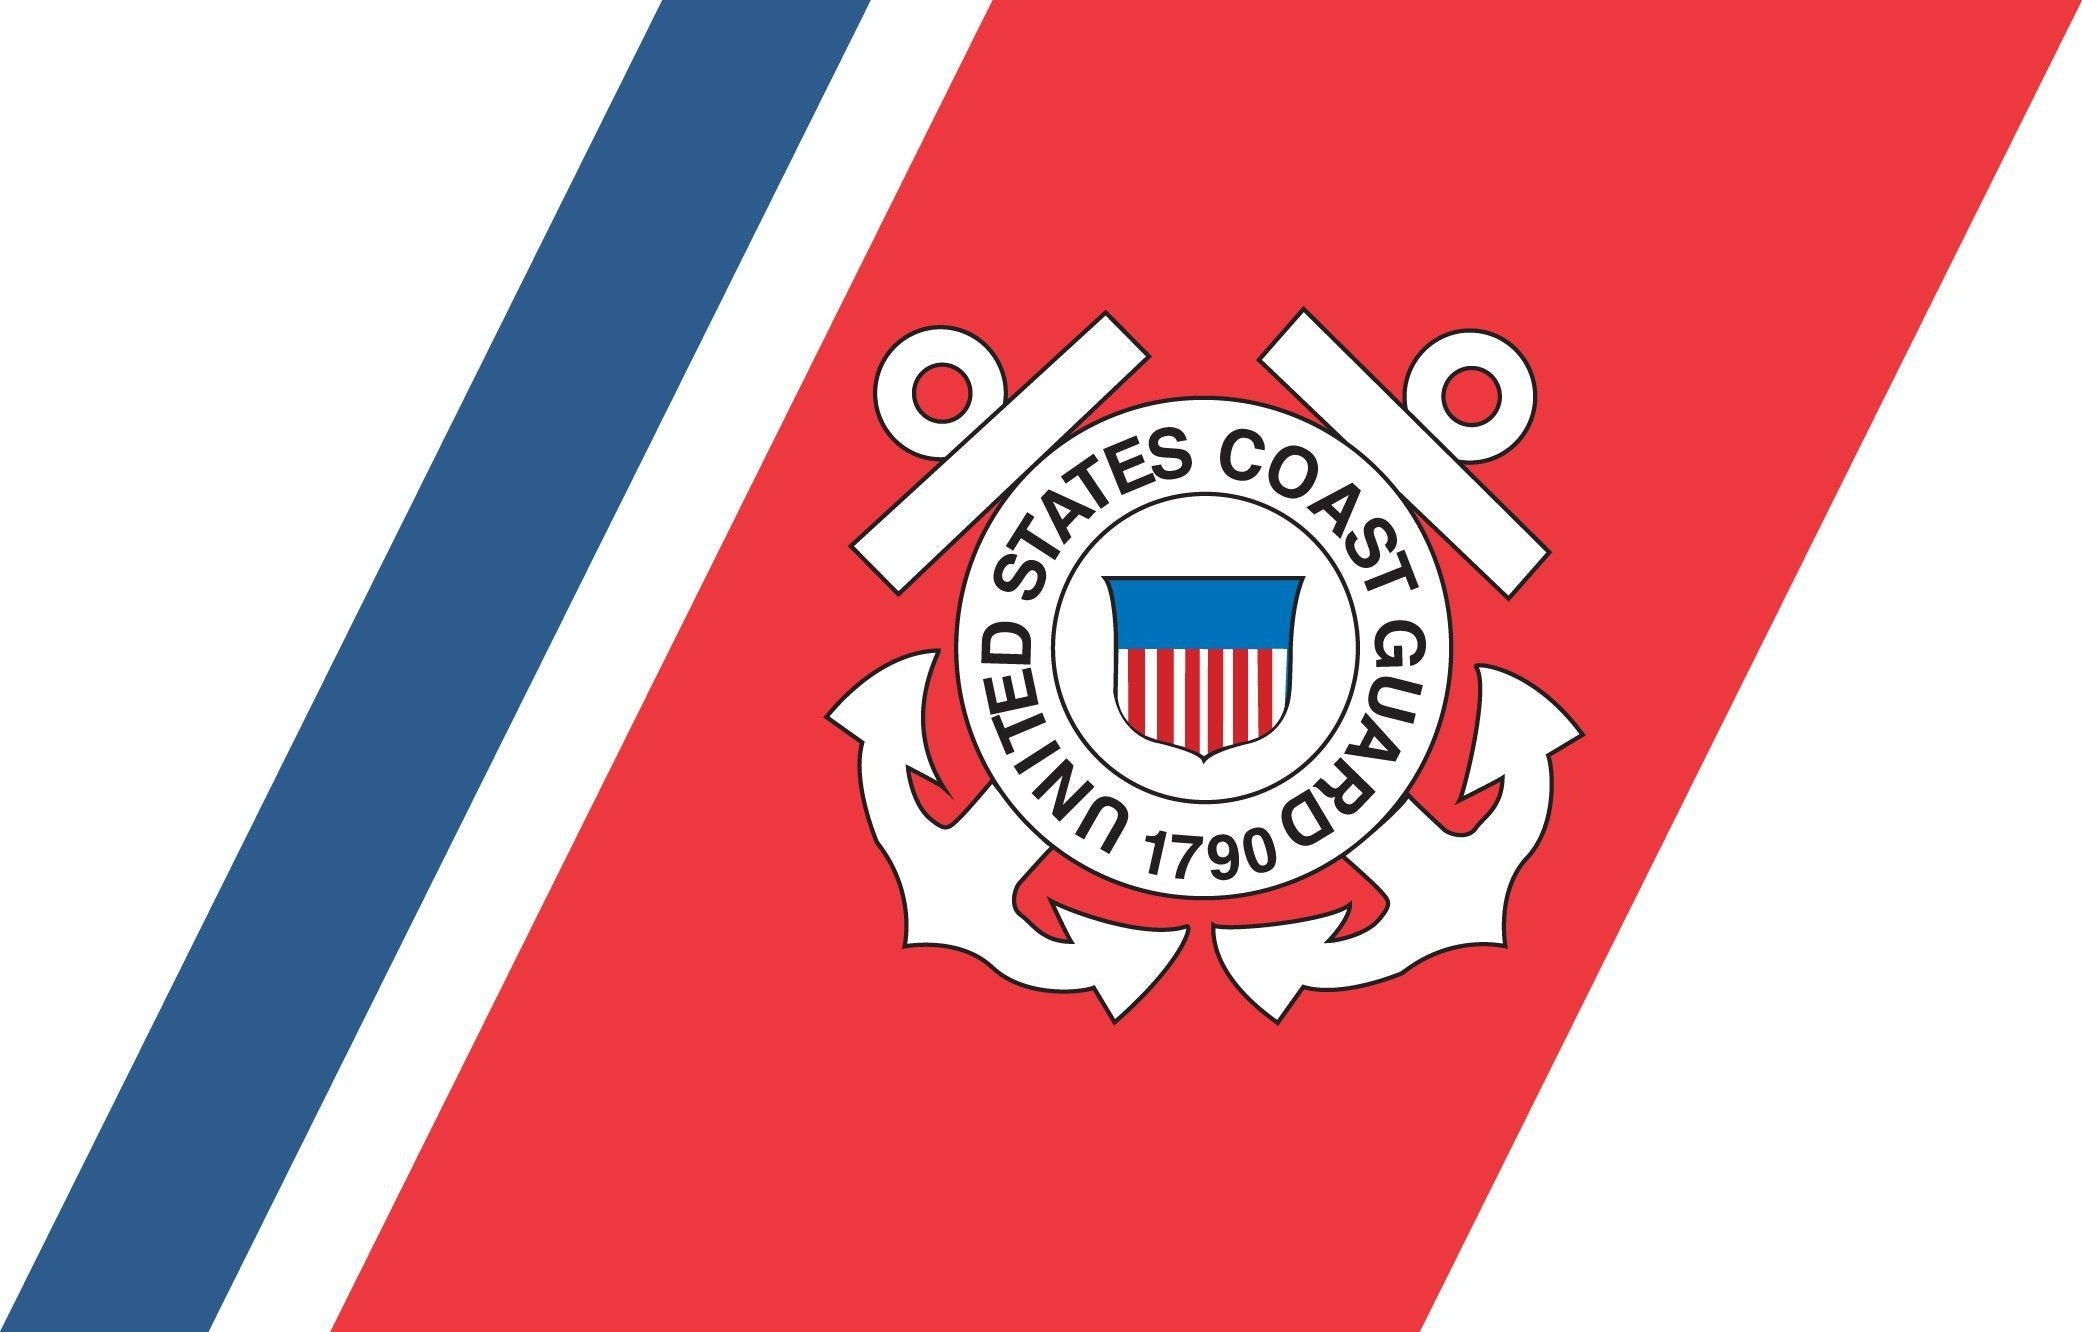 10 Top Us Coast Guard Wallpaper FULL HD 1080p For PC Background